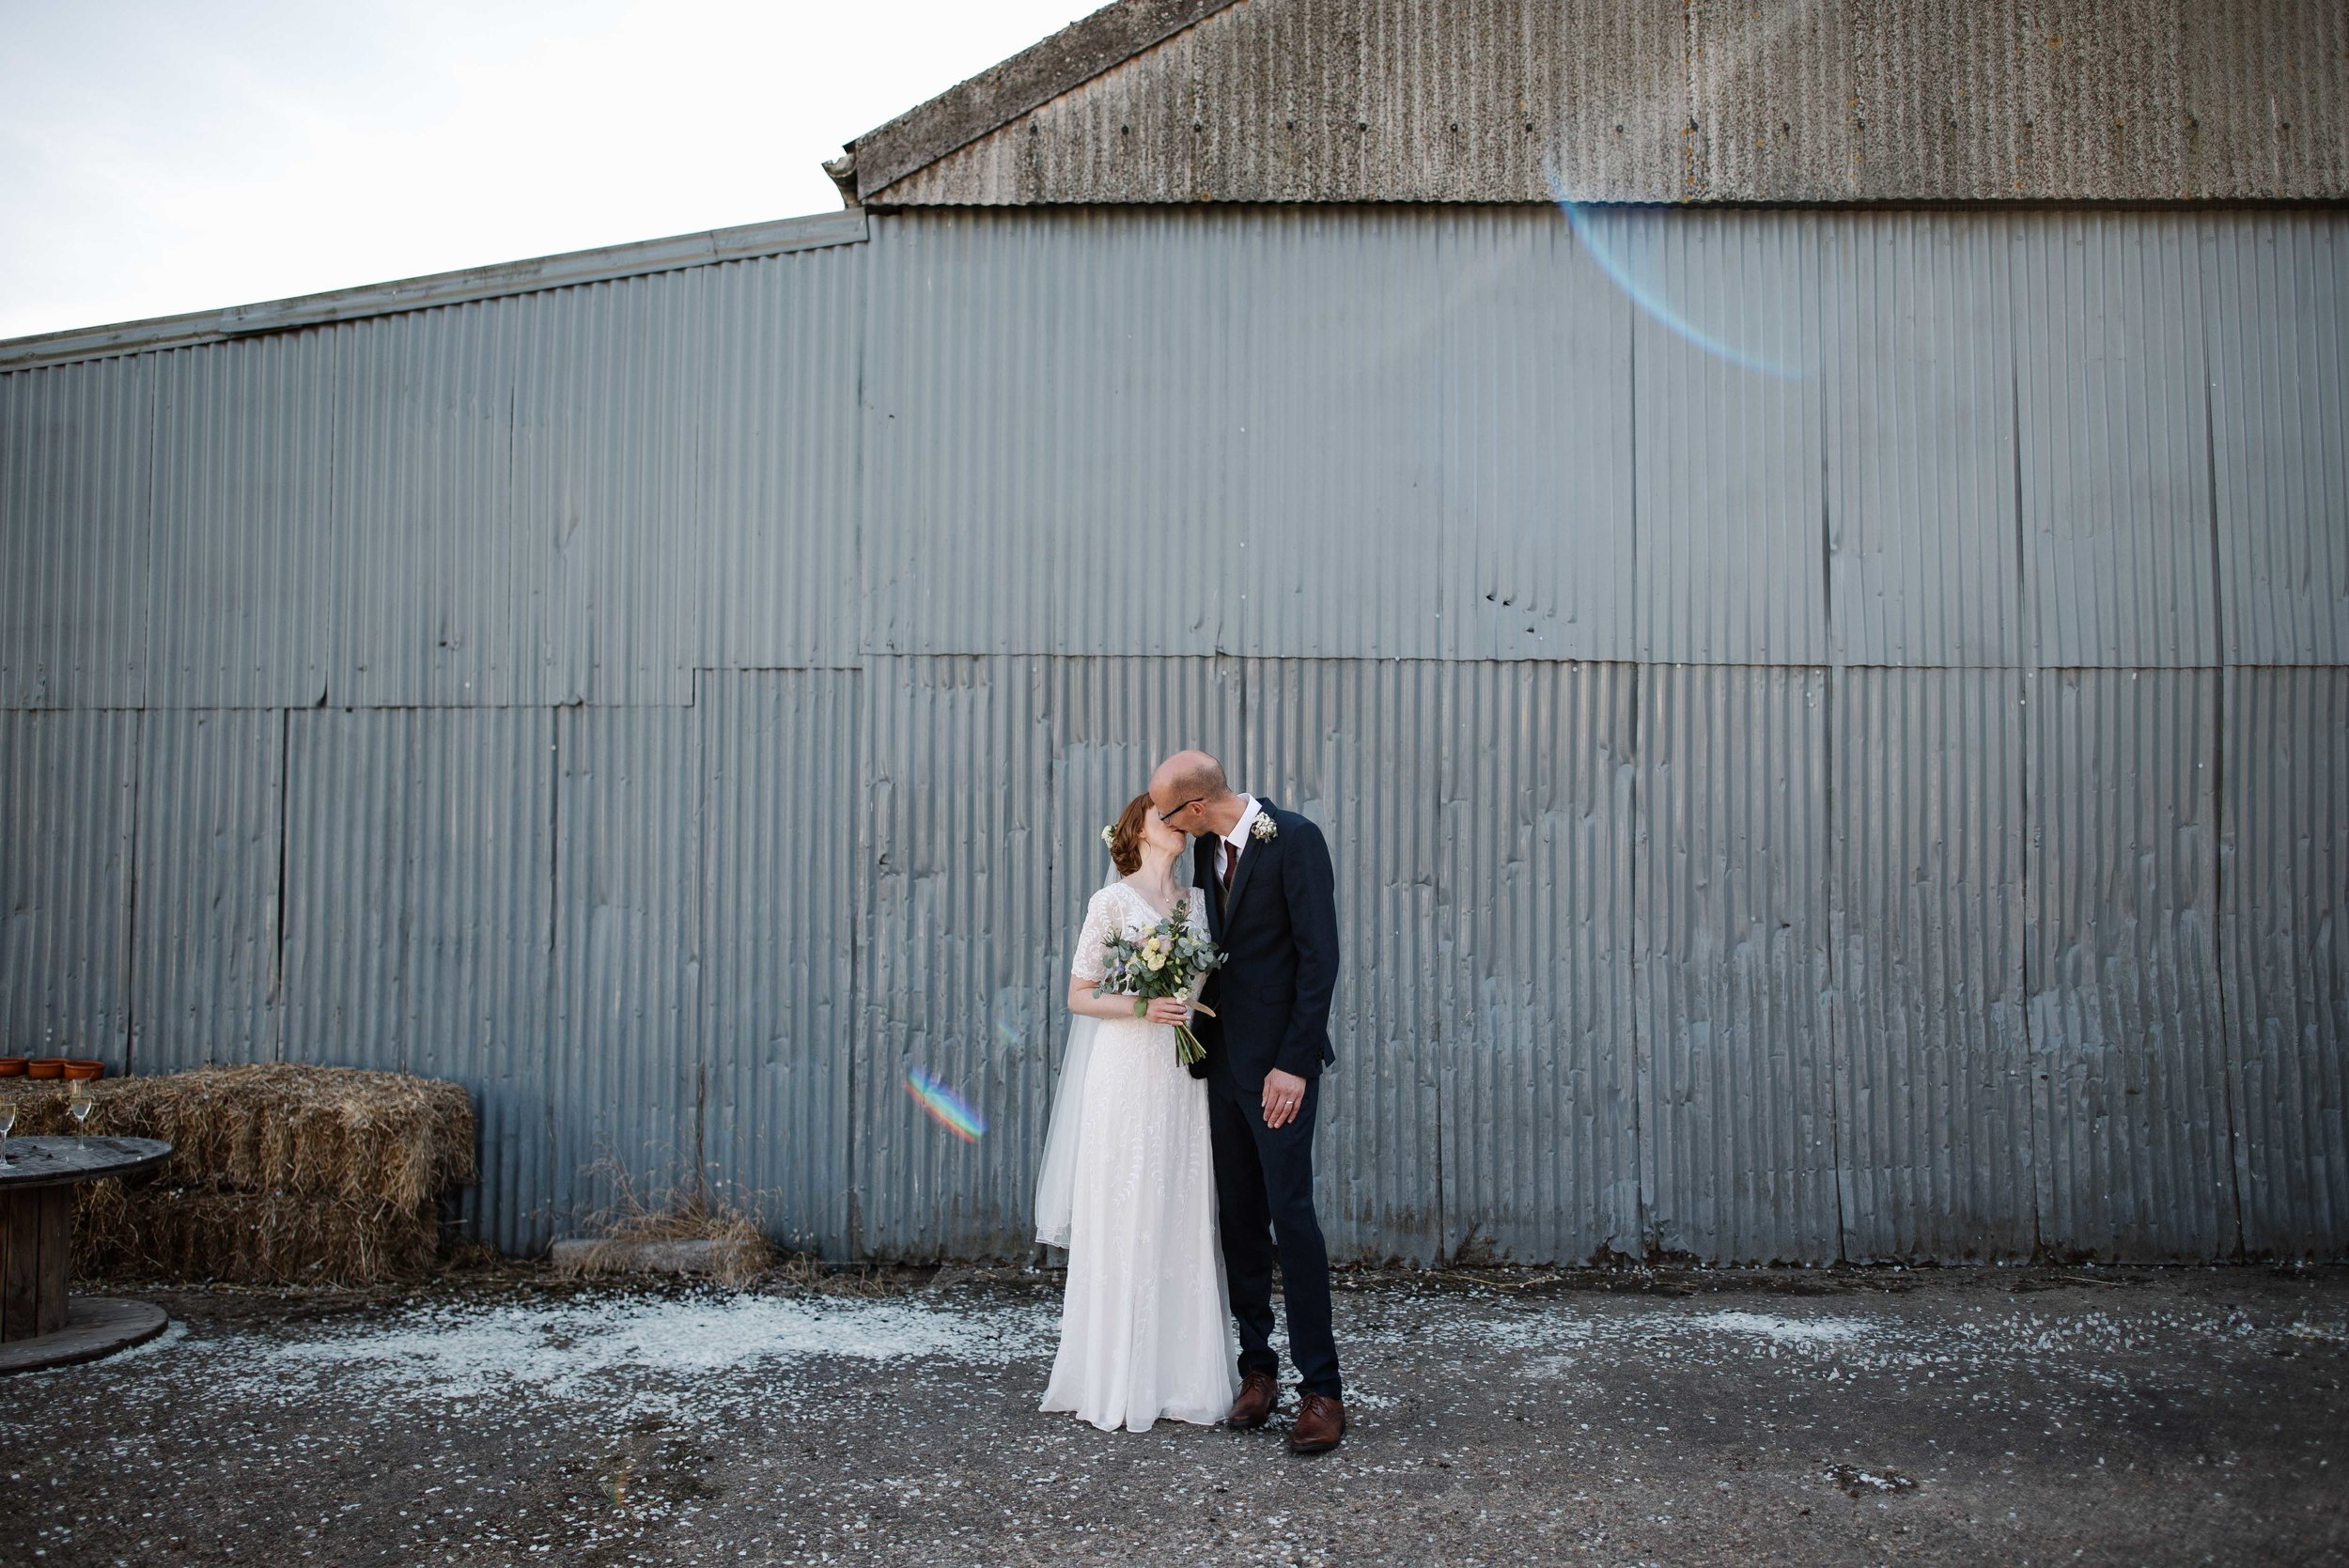 ginny + dave - blue sky outdoor ceremony, space hopper racing and limbo contests at sunset